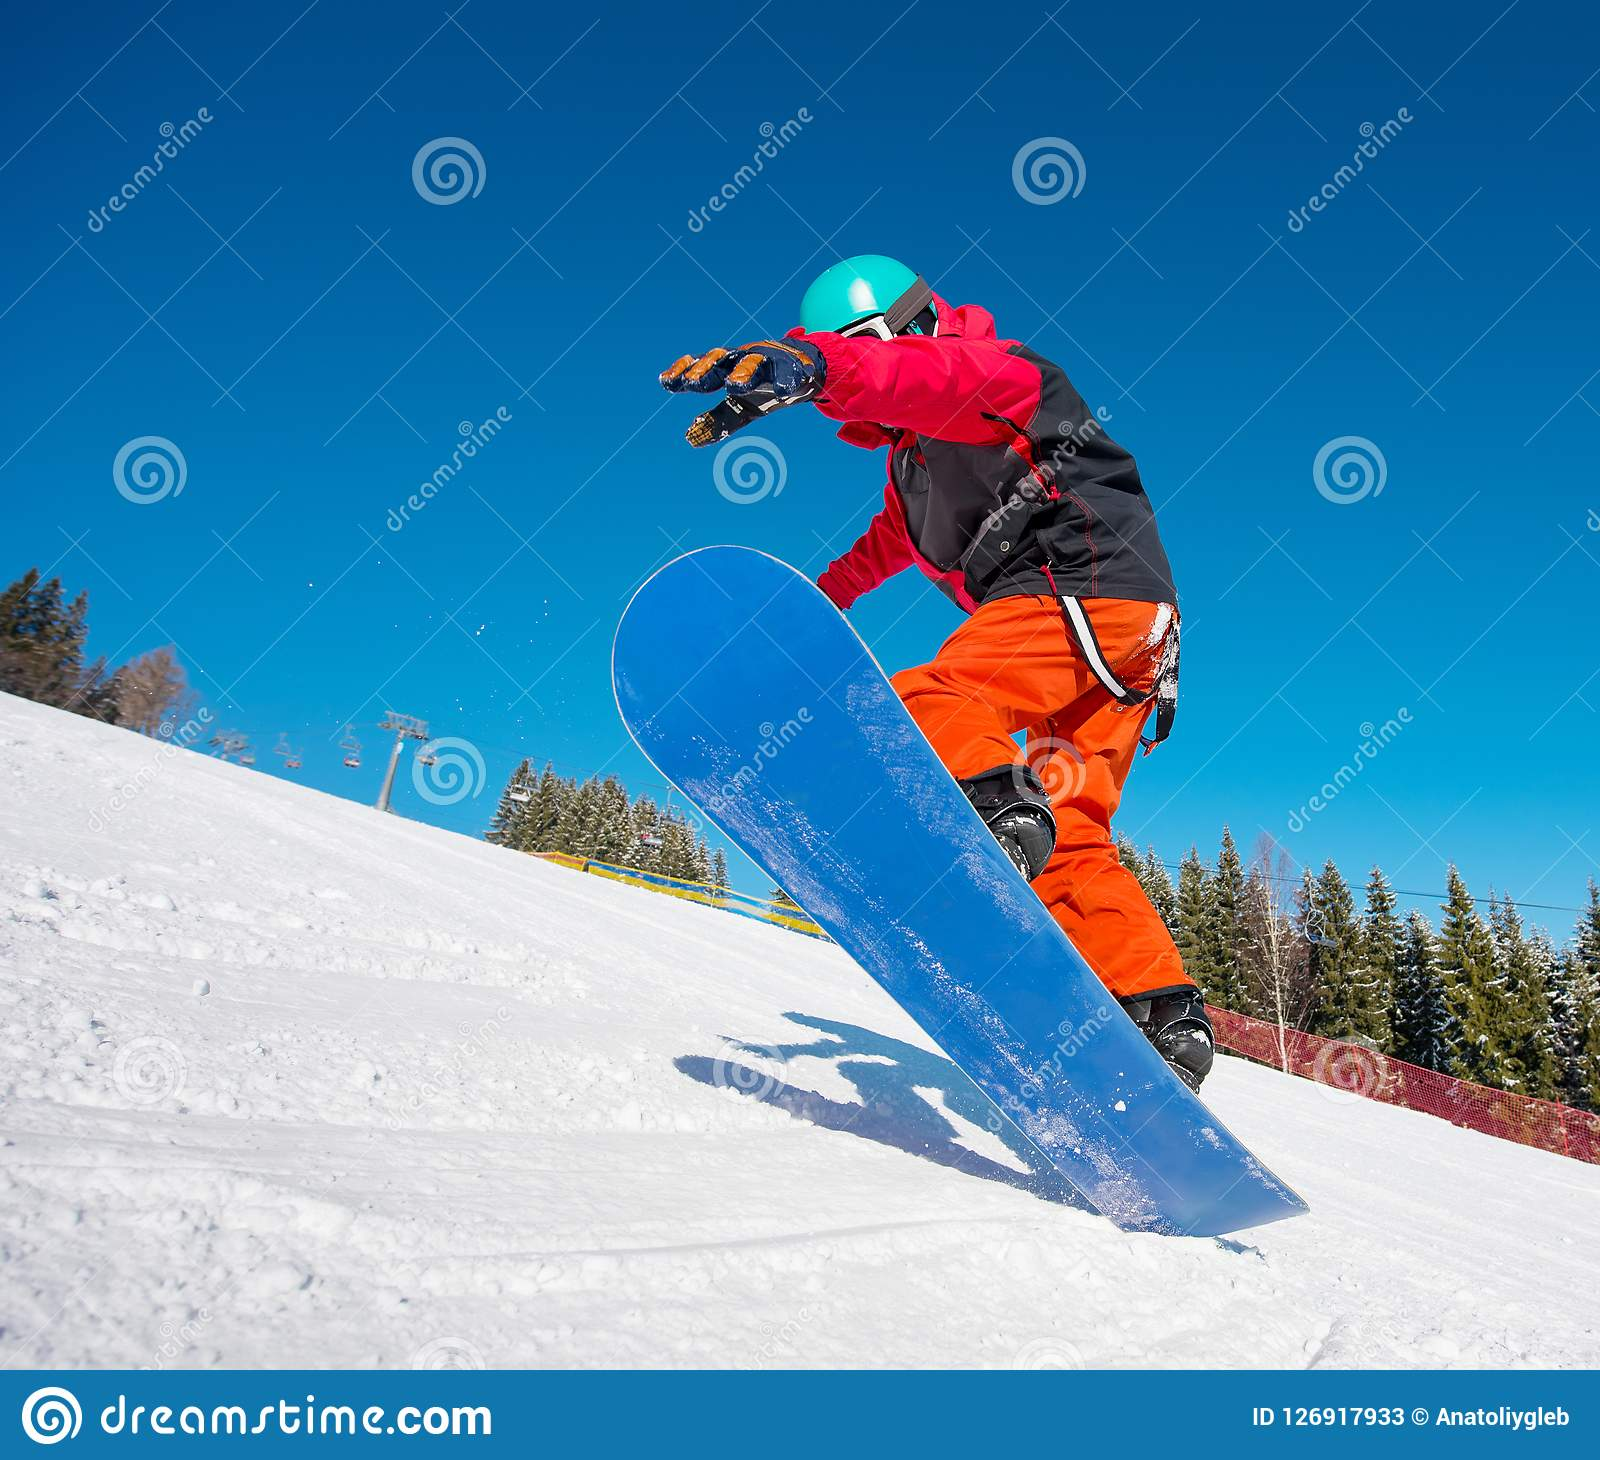 Snowboarder Jumping In The Air While Riding On The Slope At